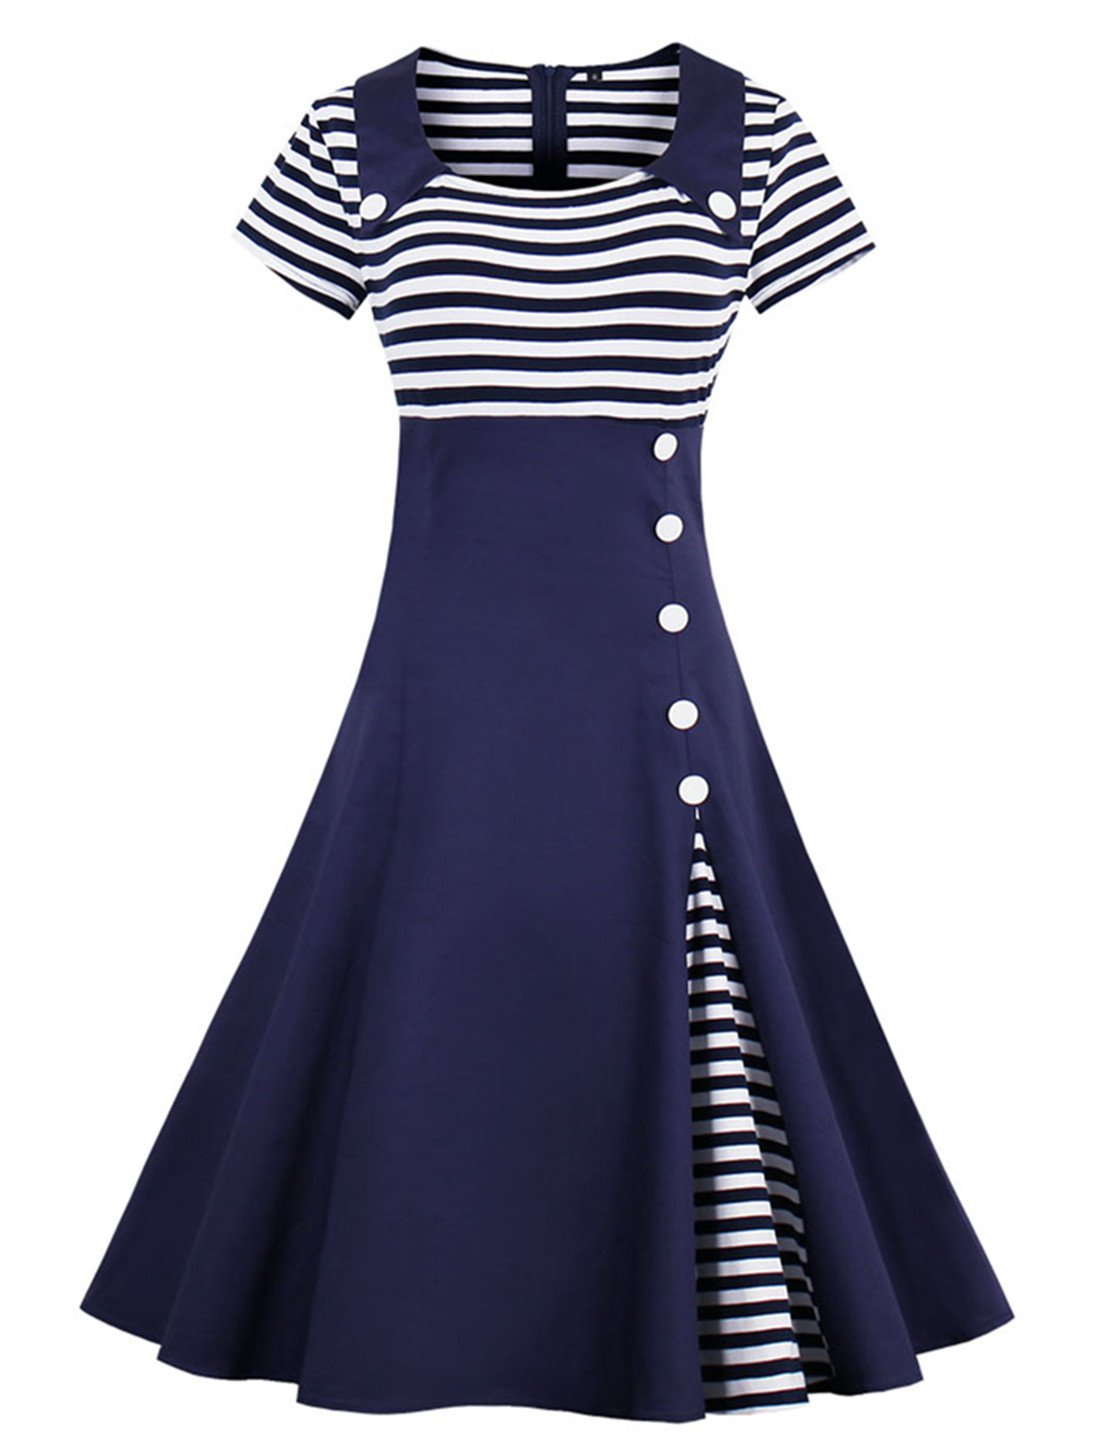 Wellwits Women's Vintage Pin Up A Line Stripes Sailor Dress Navy M by Wellwits